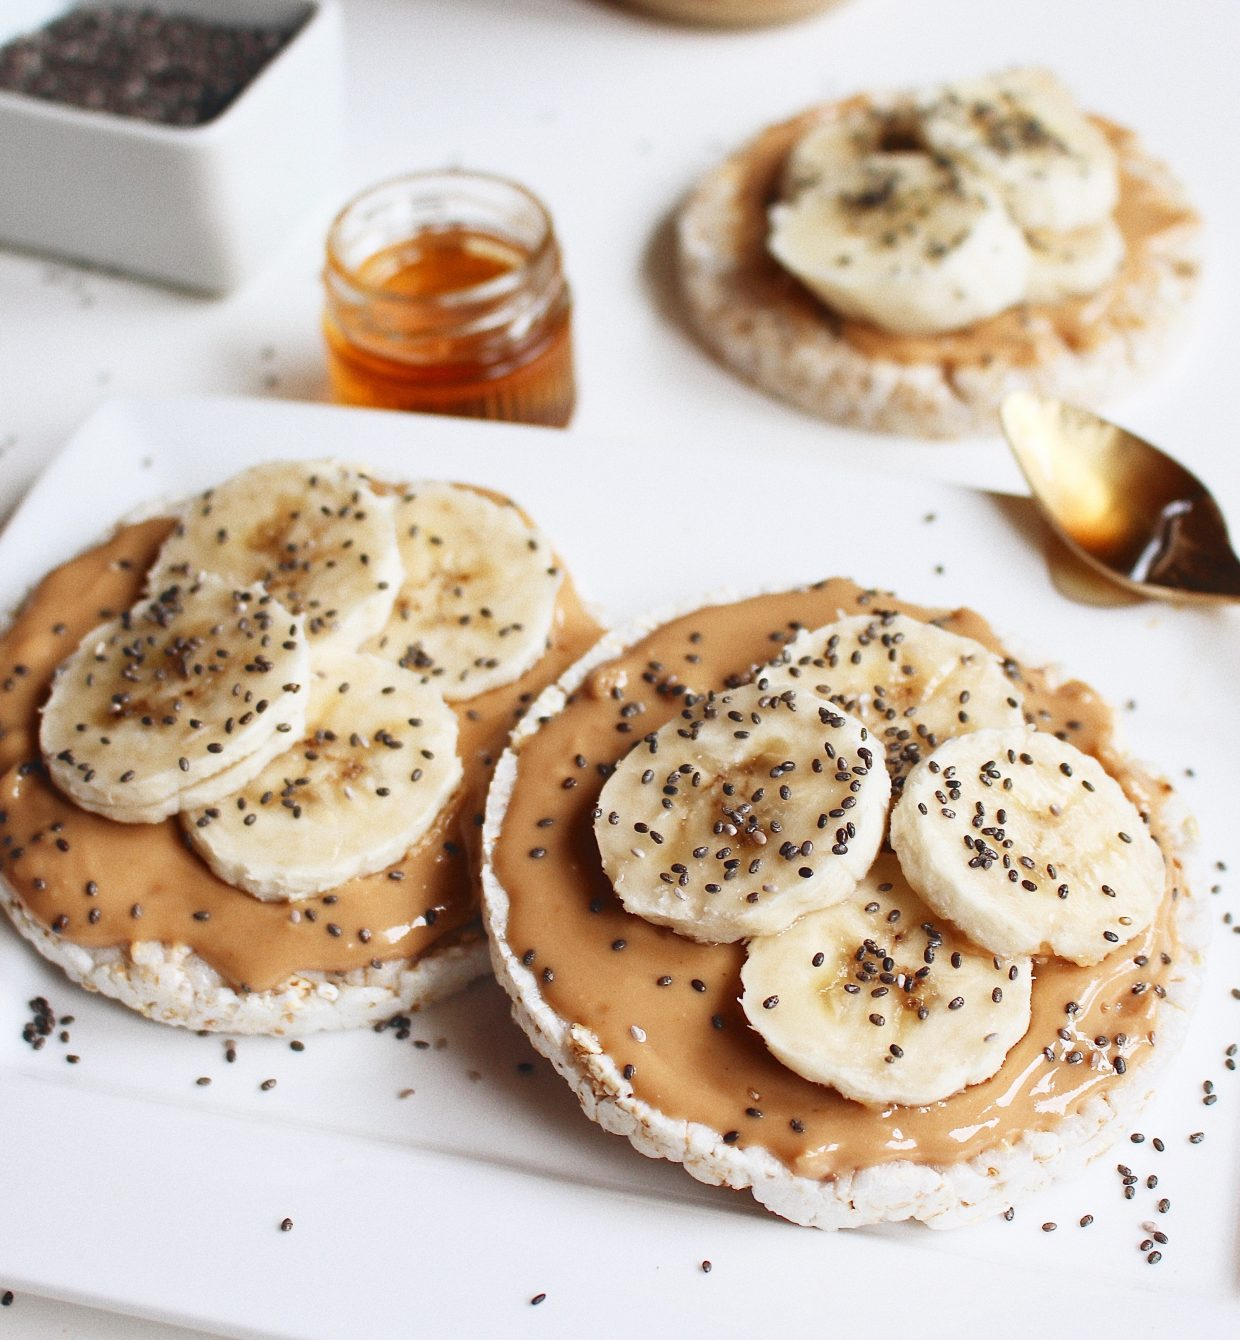 Healthy snack# Rice cake with peanut butter & banana.